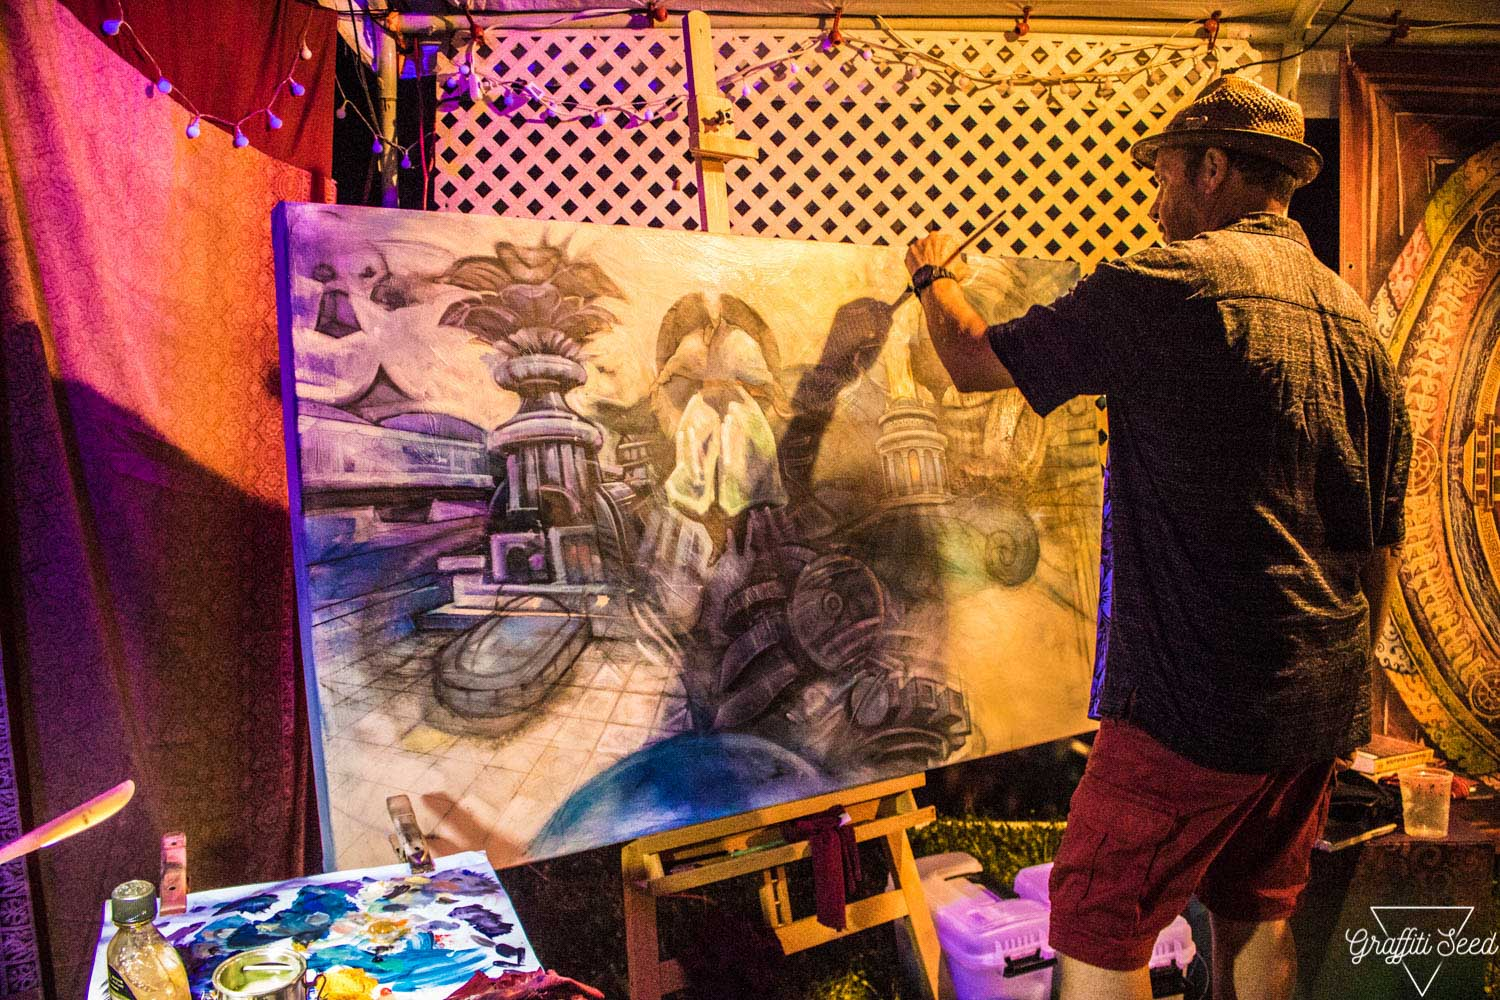 Rootwire Transformational Arts Festival 2018 _ GraffitiSeed.com 18.jpg